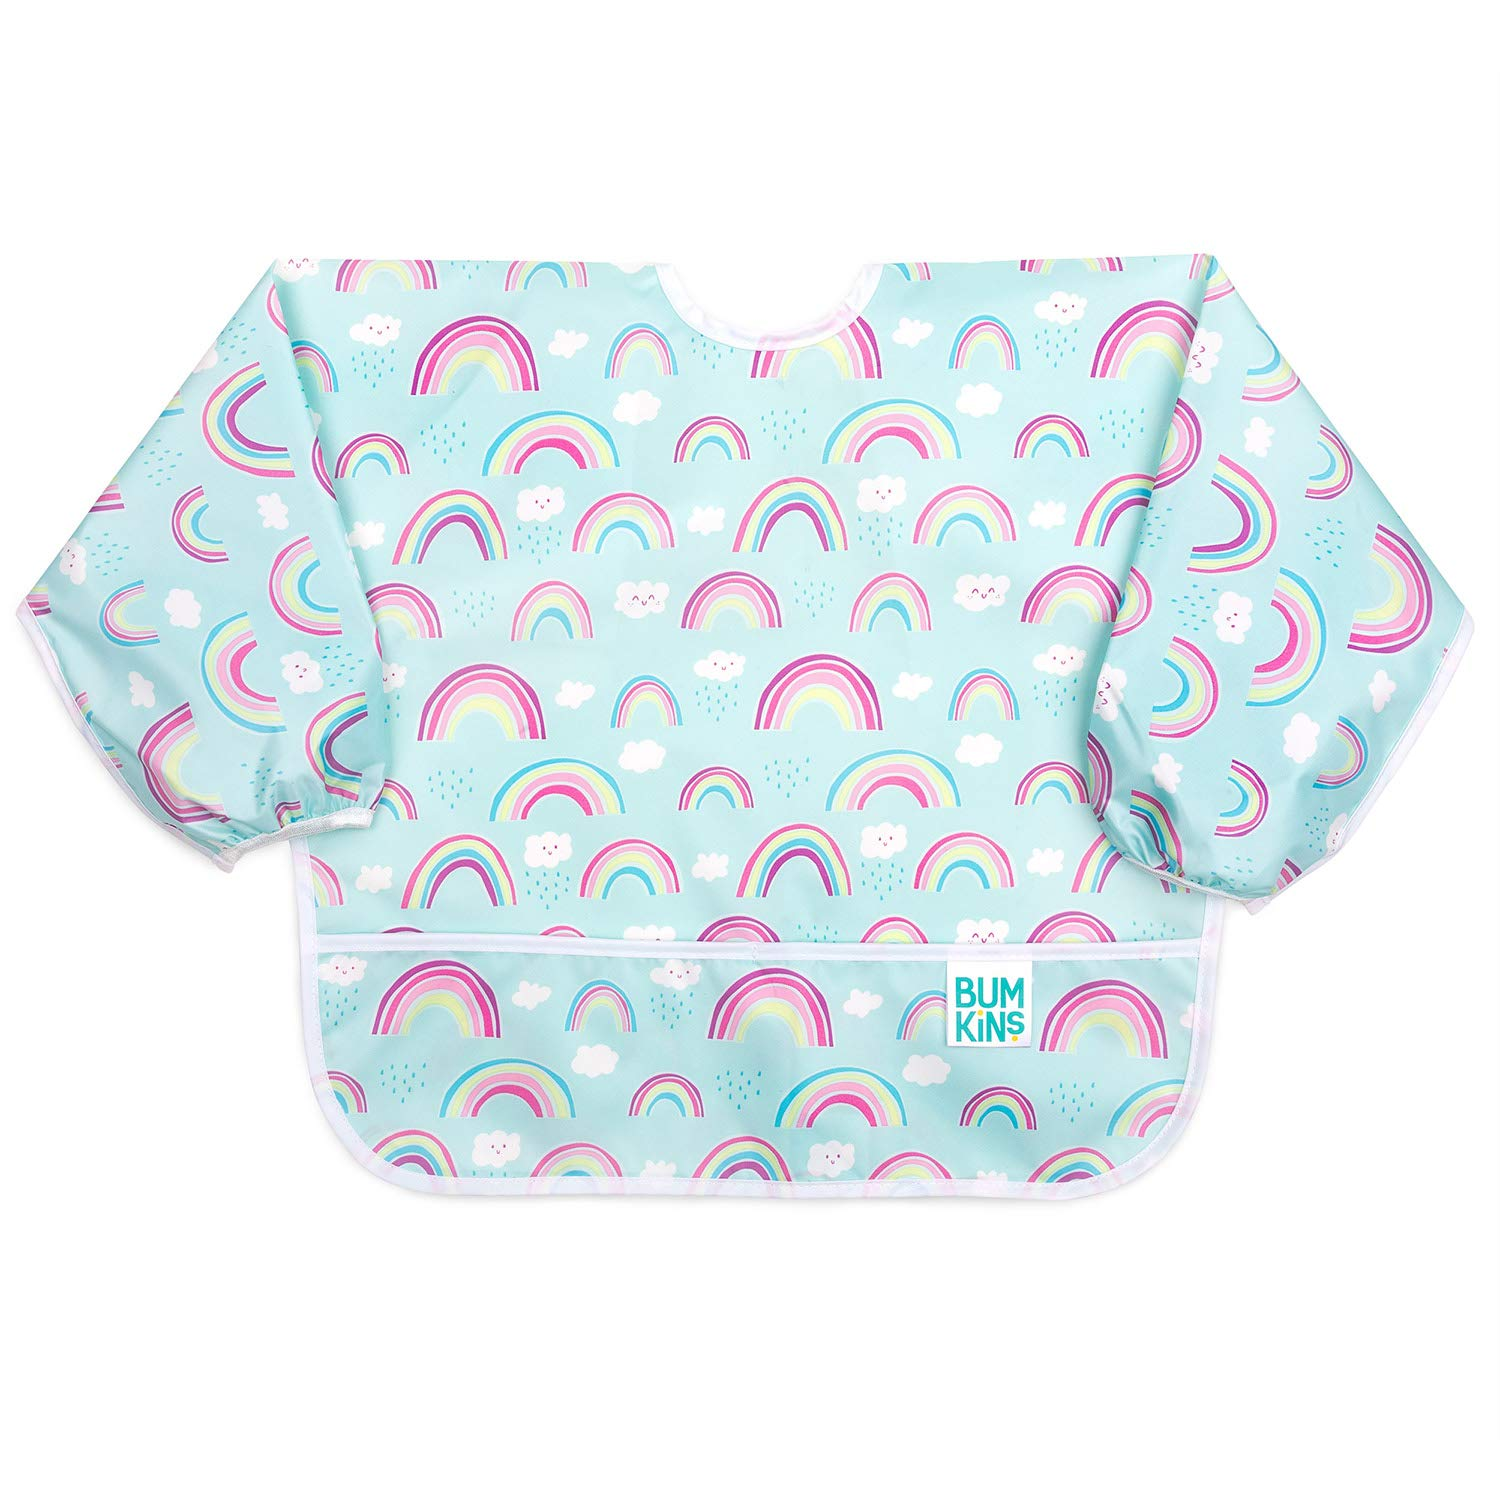 Bumkins Sleeved Bib/Baby Bib/Toddler Bib/Smock, Waterproof, Washable, Stain and Odor Resistant, 6-24 Months - Rainbows